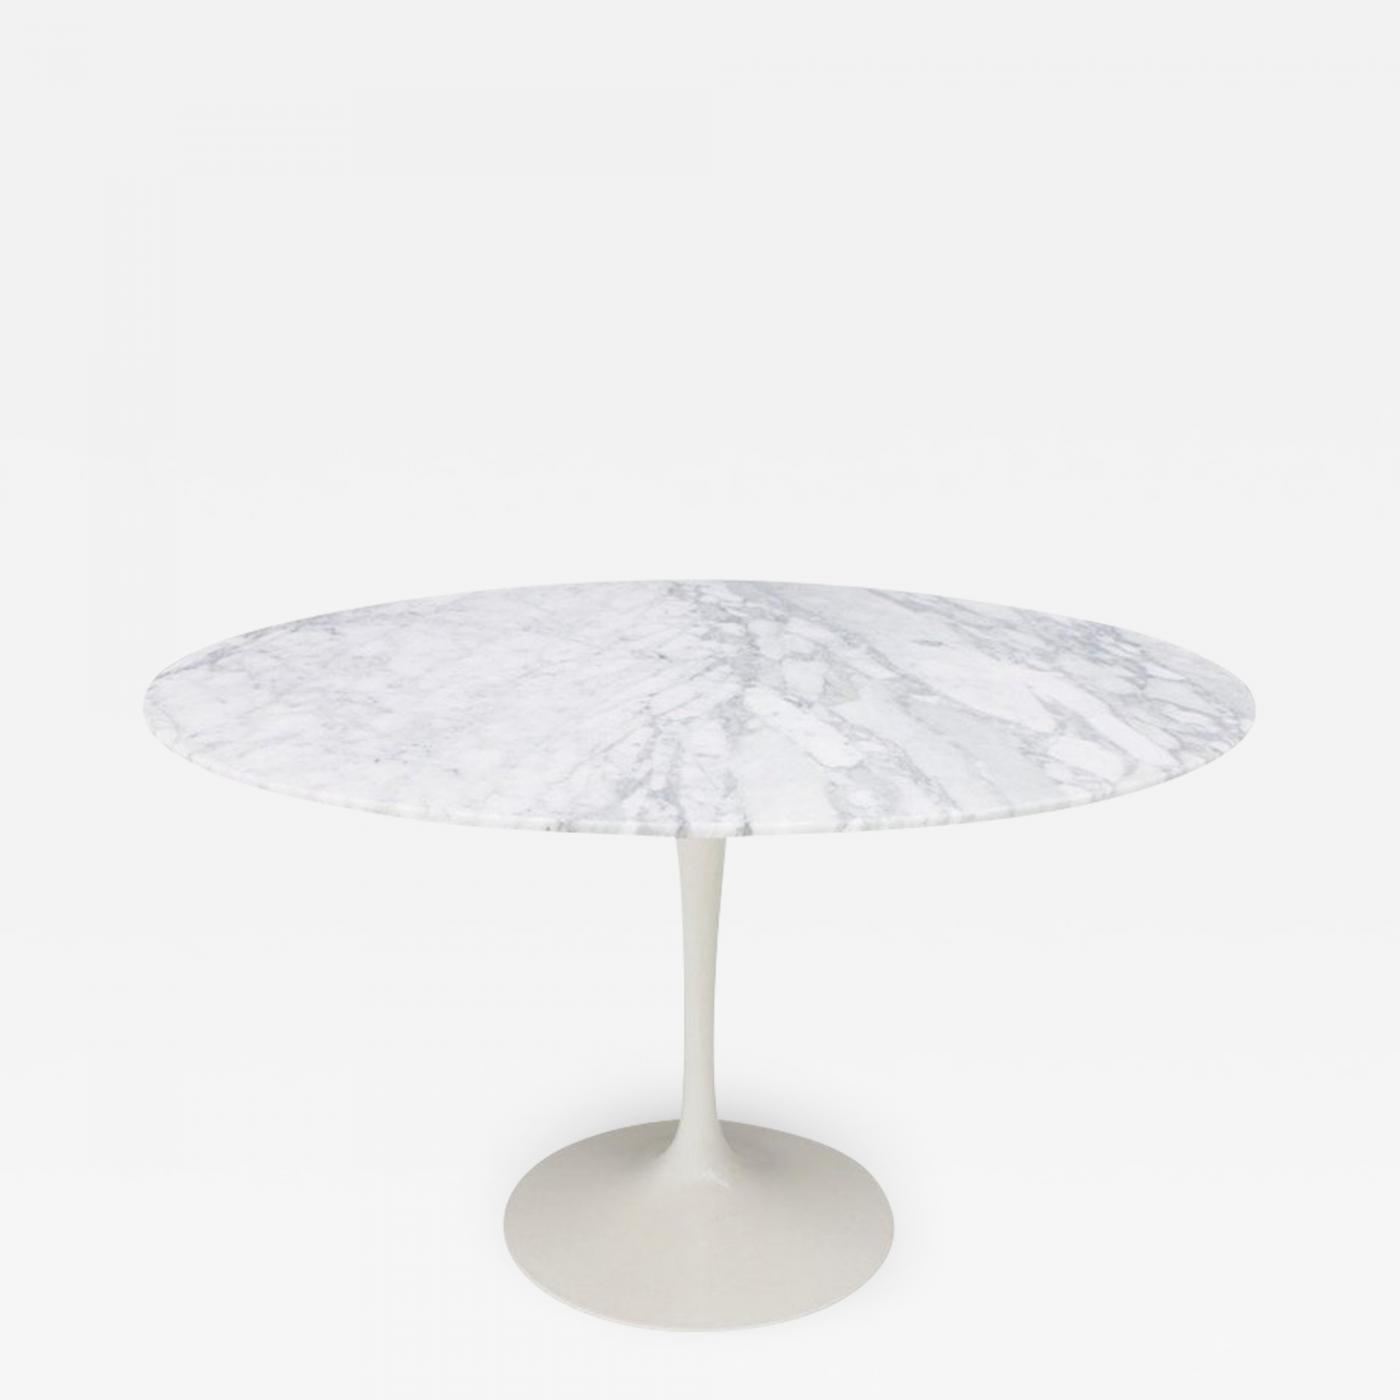 Saarinen Knoll Table Knoll International Eero Saarinen Tulip Dining Table With White Marble Top Knoll Internationa